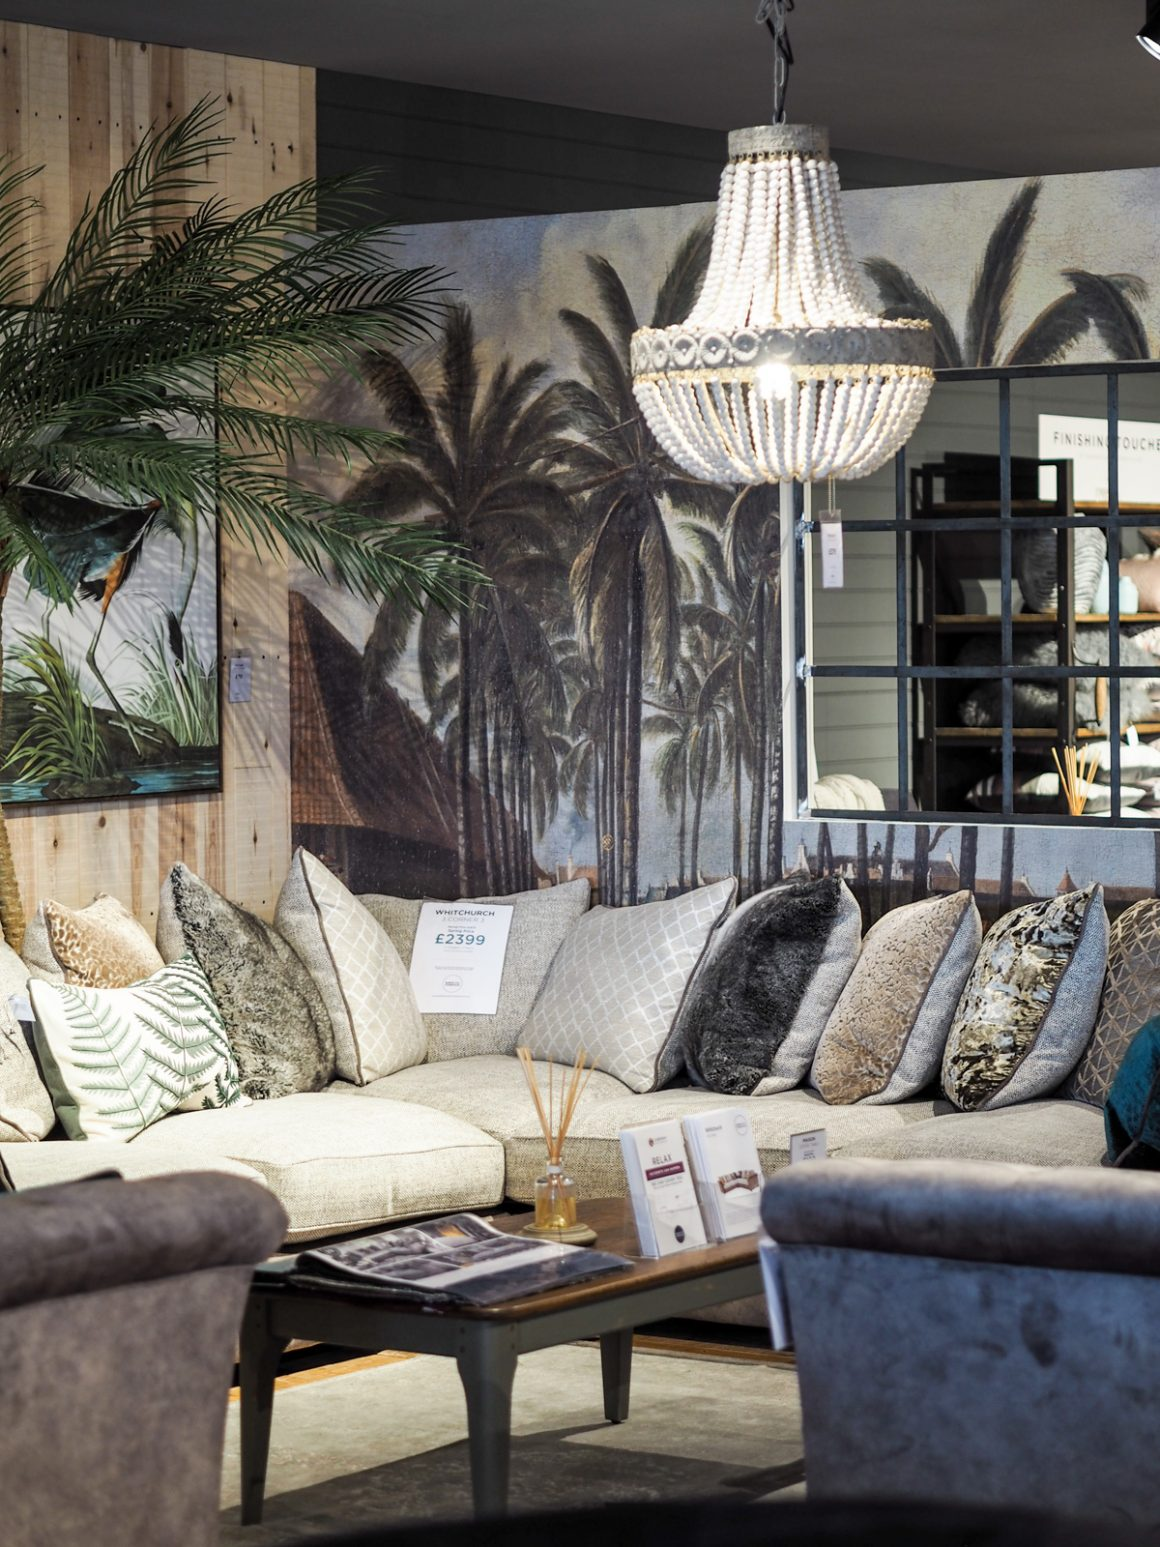 Glamorous luxe interior inspiration at Barker and Stonehouse Leeds